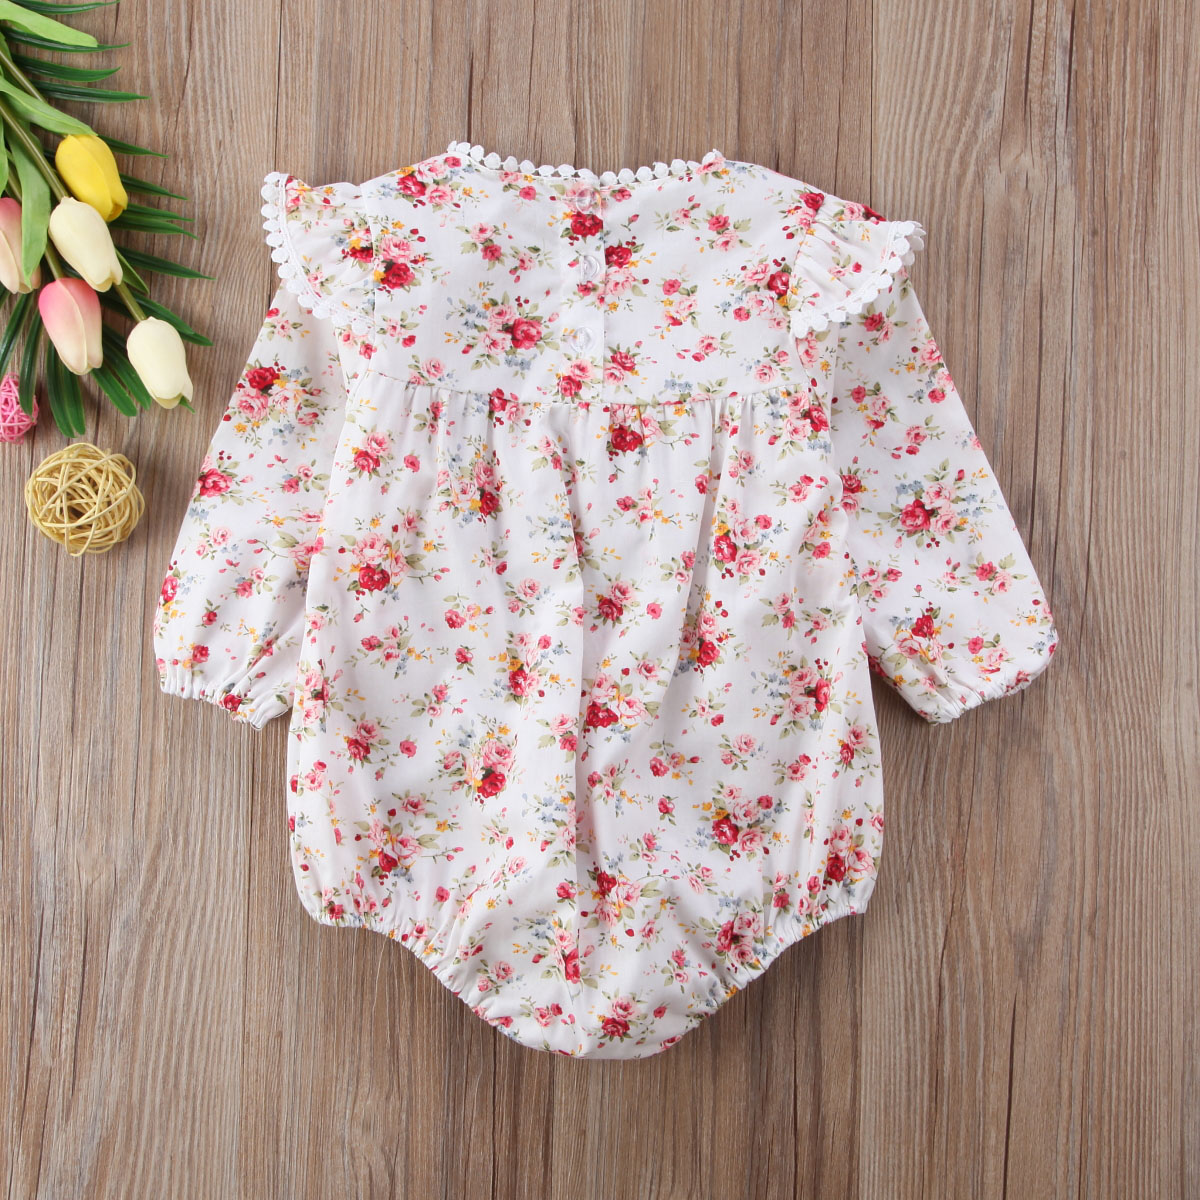 6M-4Years Princess Kids Baby Girls Floral Long Sleeve Romper sweet ruffle cotton Jumpsuit Outfits baby girl clothing 2017